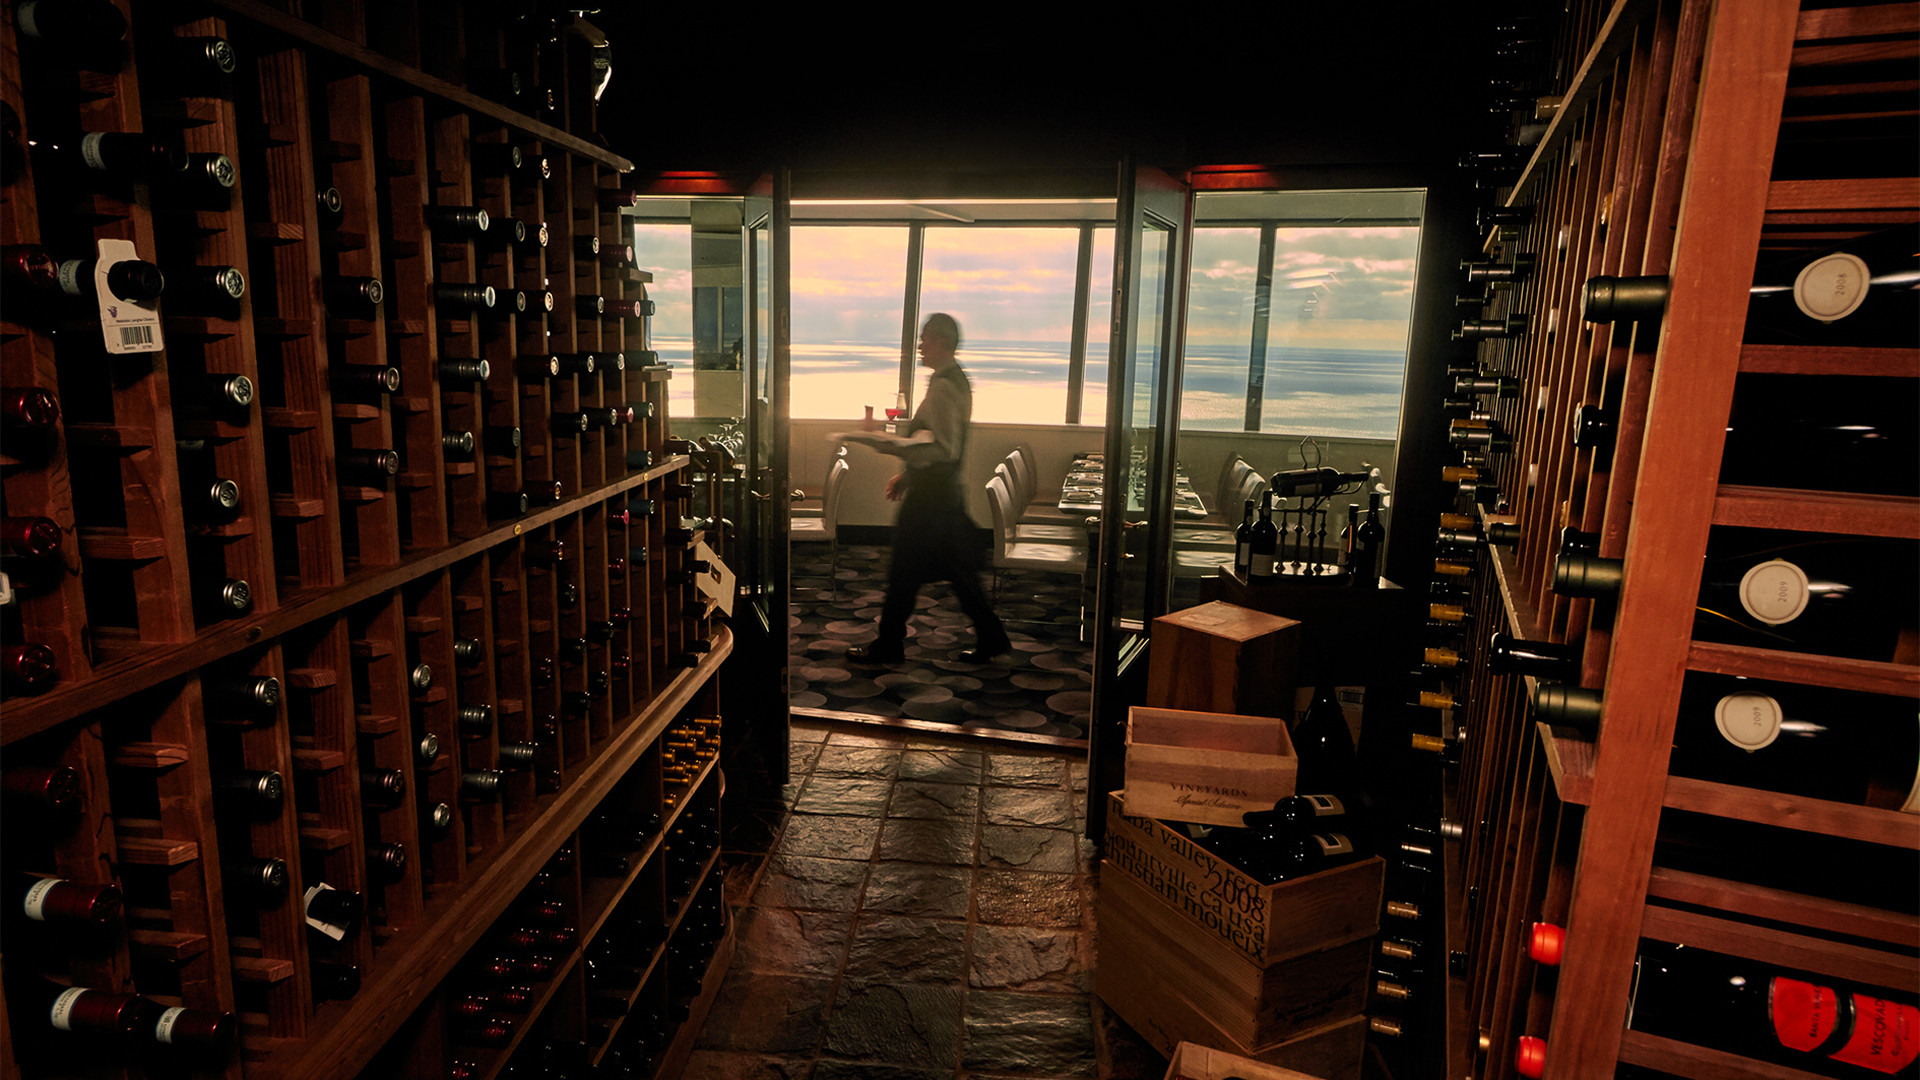 Win dinner for two at the CN Tower's 360 Restaurant | The cellar in the sky